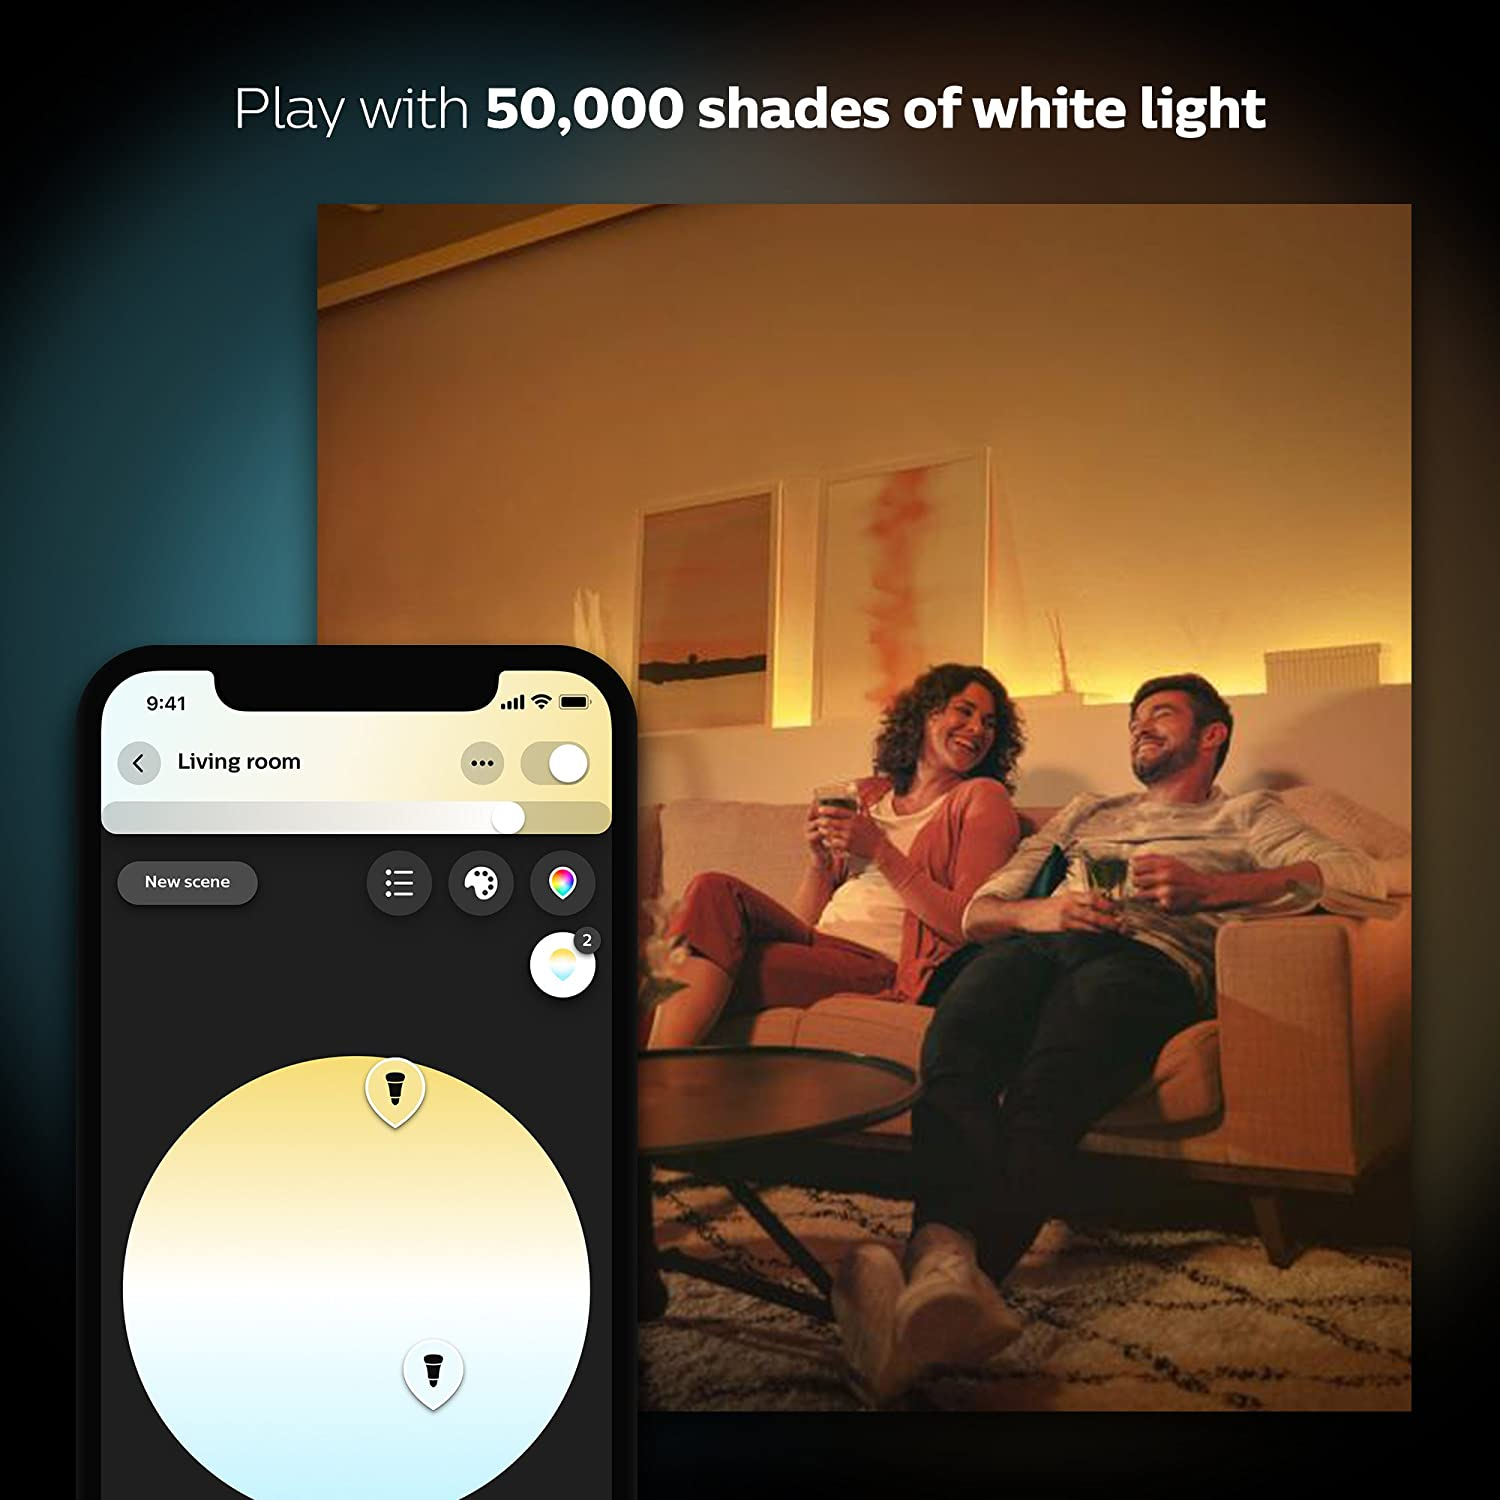 Philips Hue White Ambiance BR30 60W Equivalent Dimmable LED Smart Flood Light Works with Alexa Apple HomeKit and Google Assistant